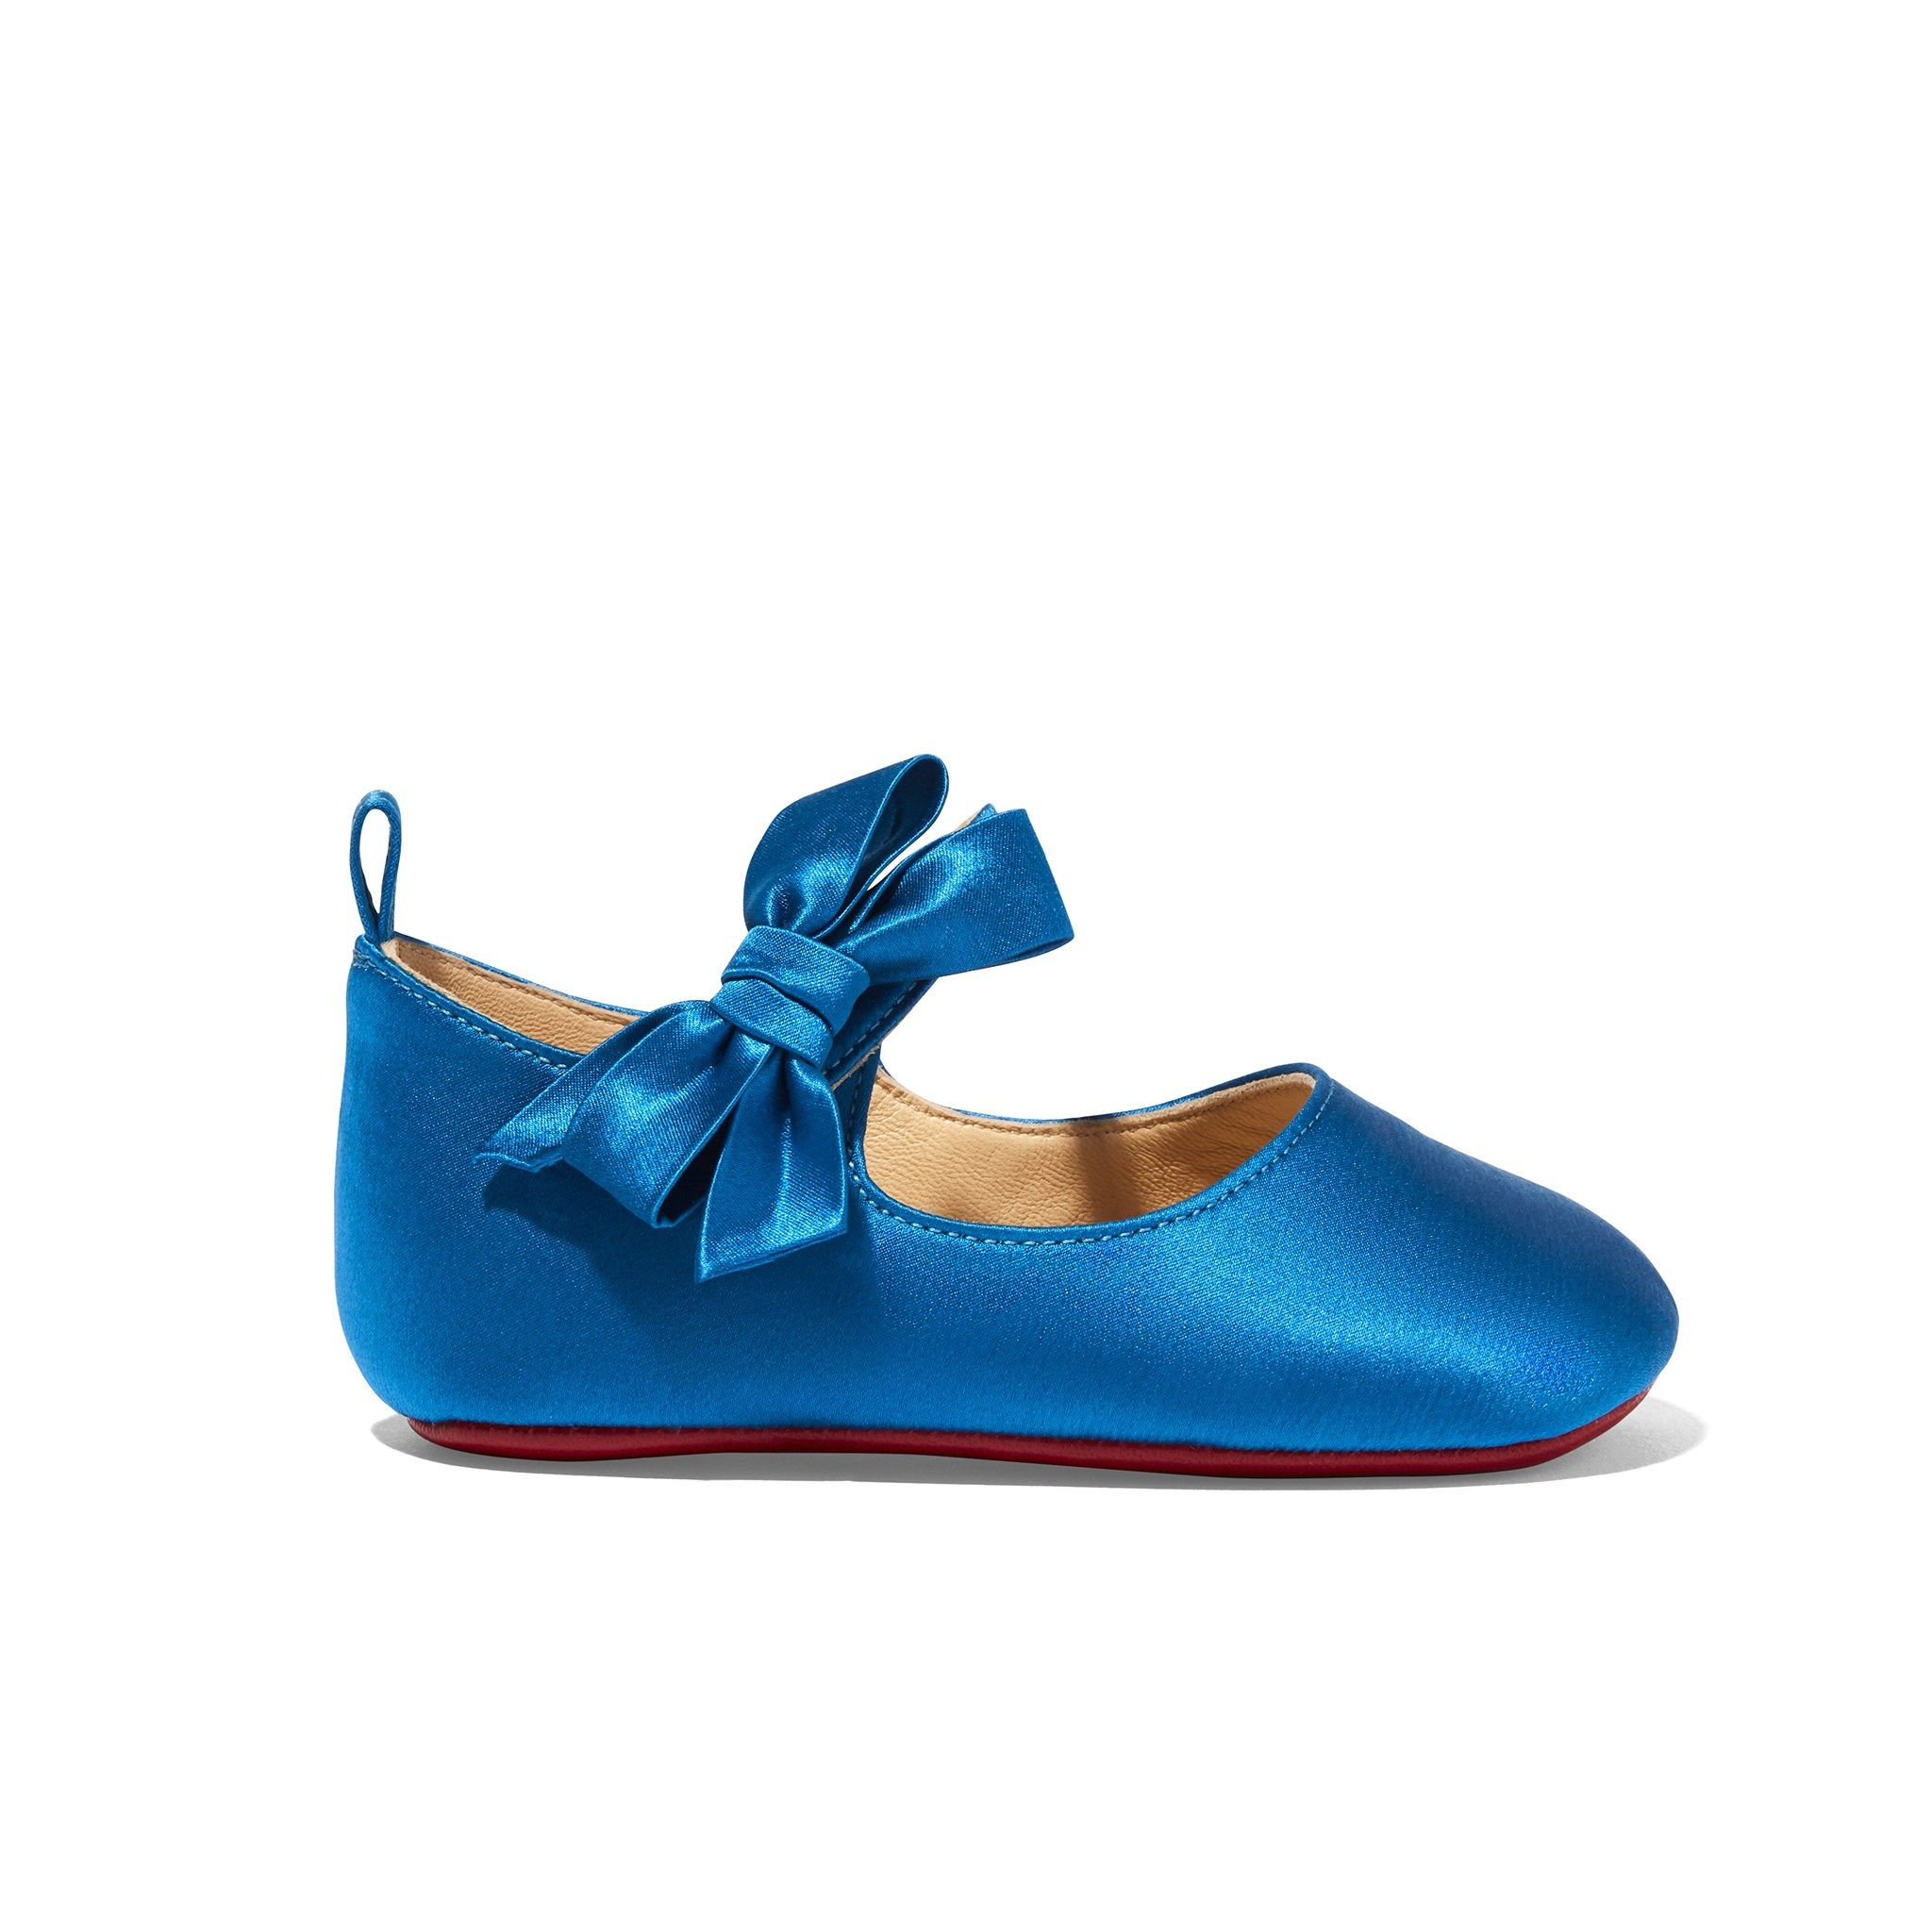 775b8ccaf82 Christian Louboutin Designed  250 Baby Shoes For Gwyneth Paltrow s ...